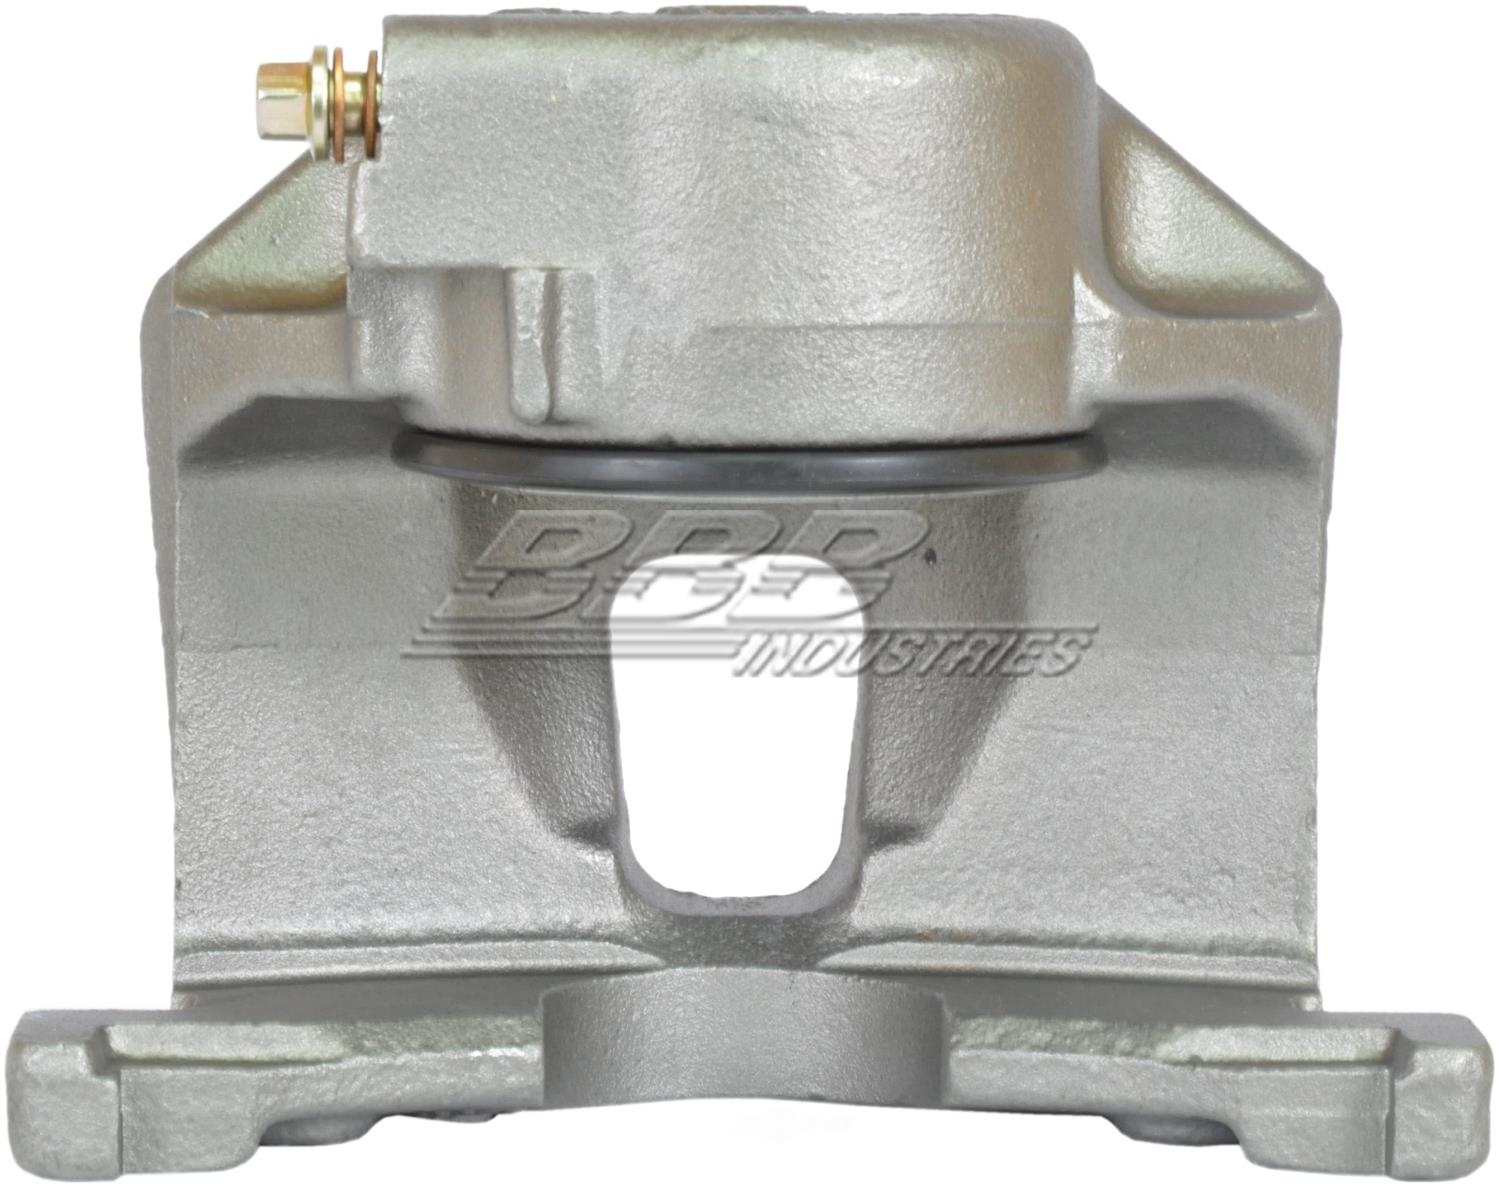 BBB INDUSTRIES - Reman Caliper W/installation Hardware - BBA 97-17222A